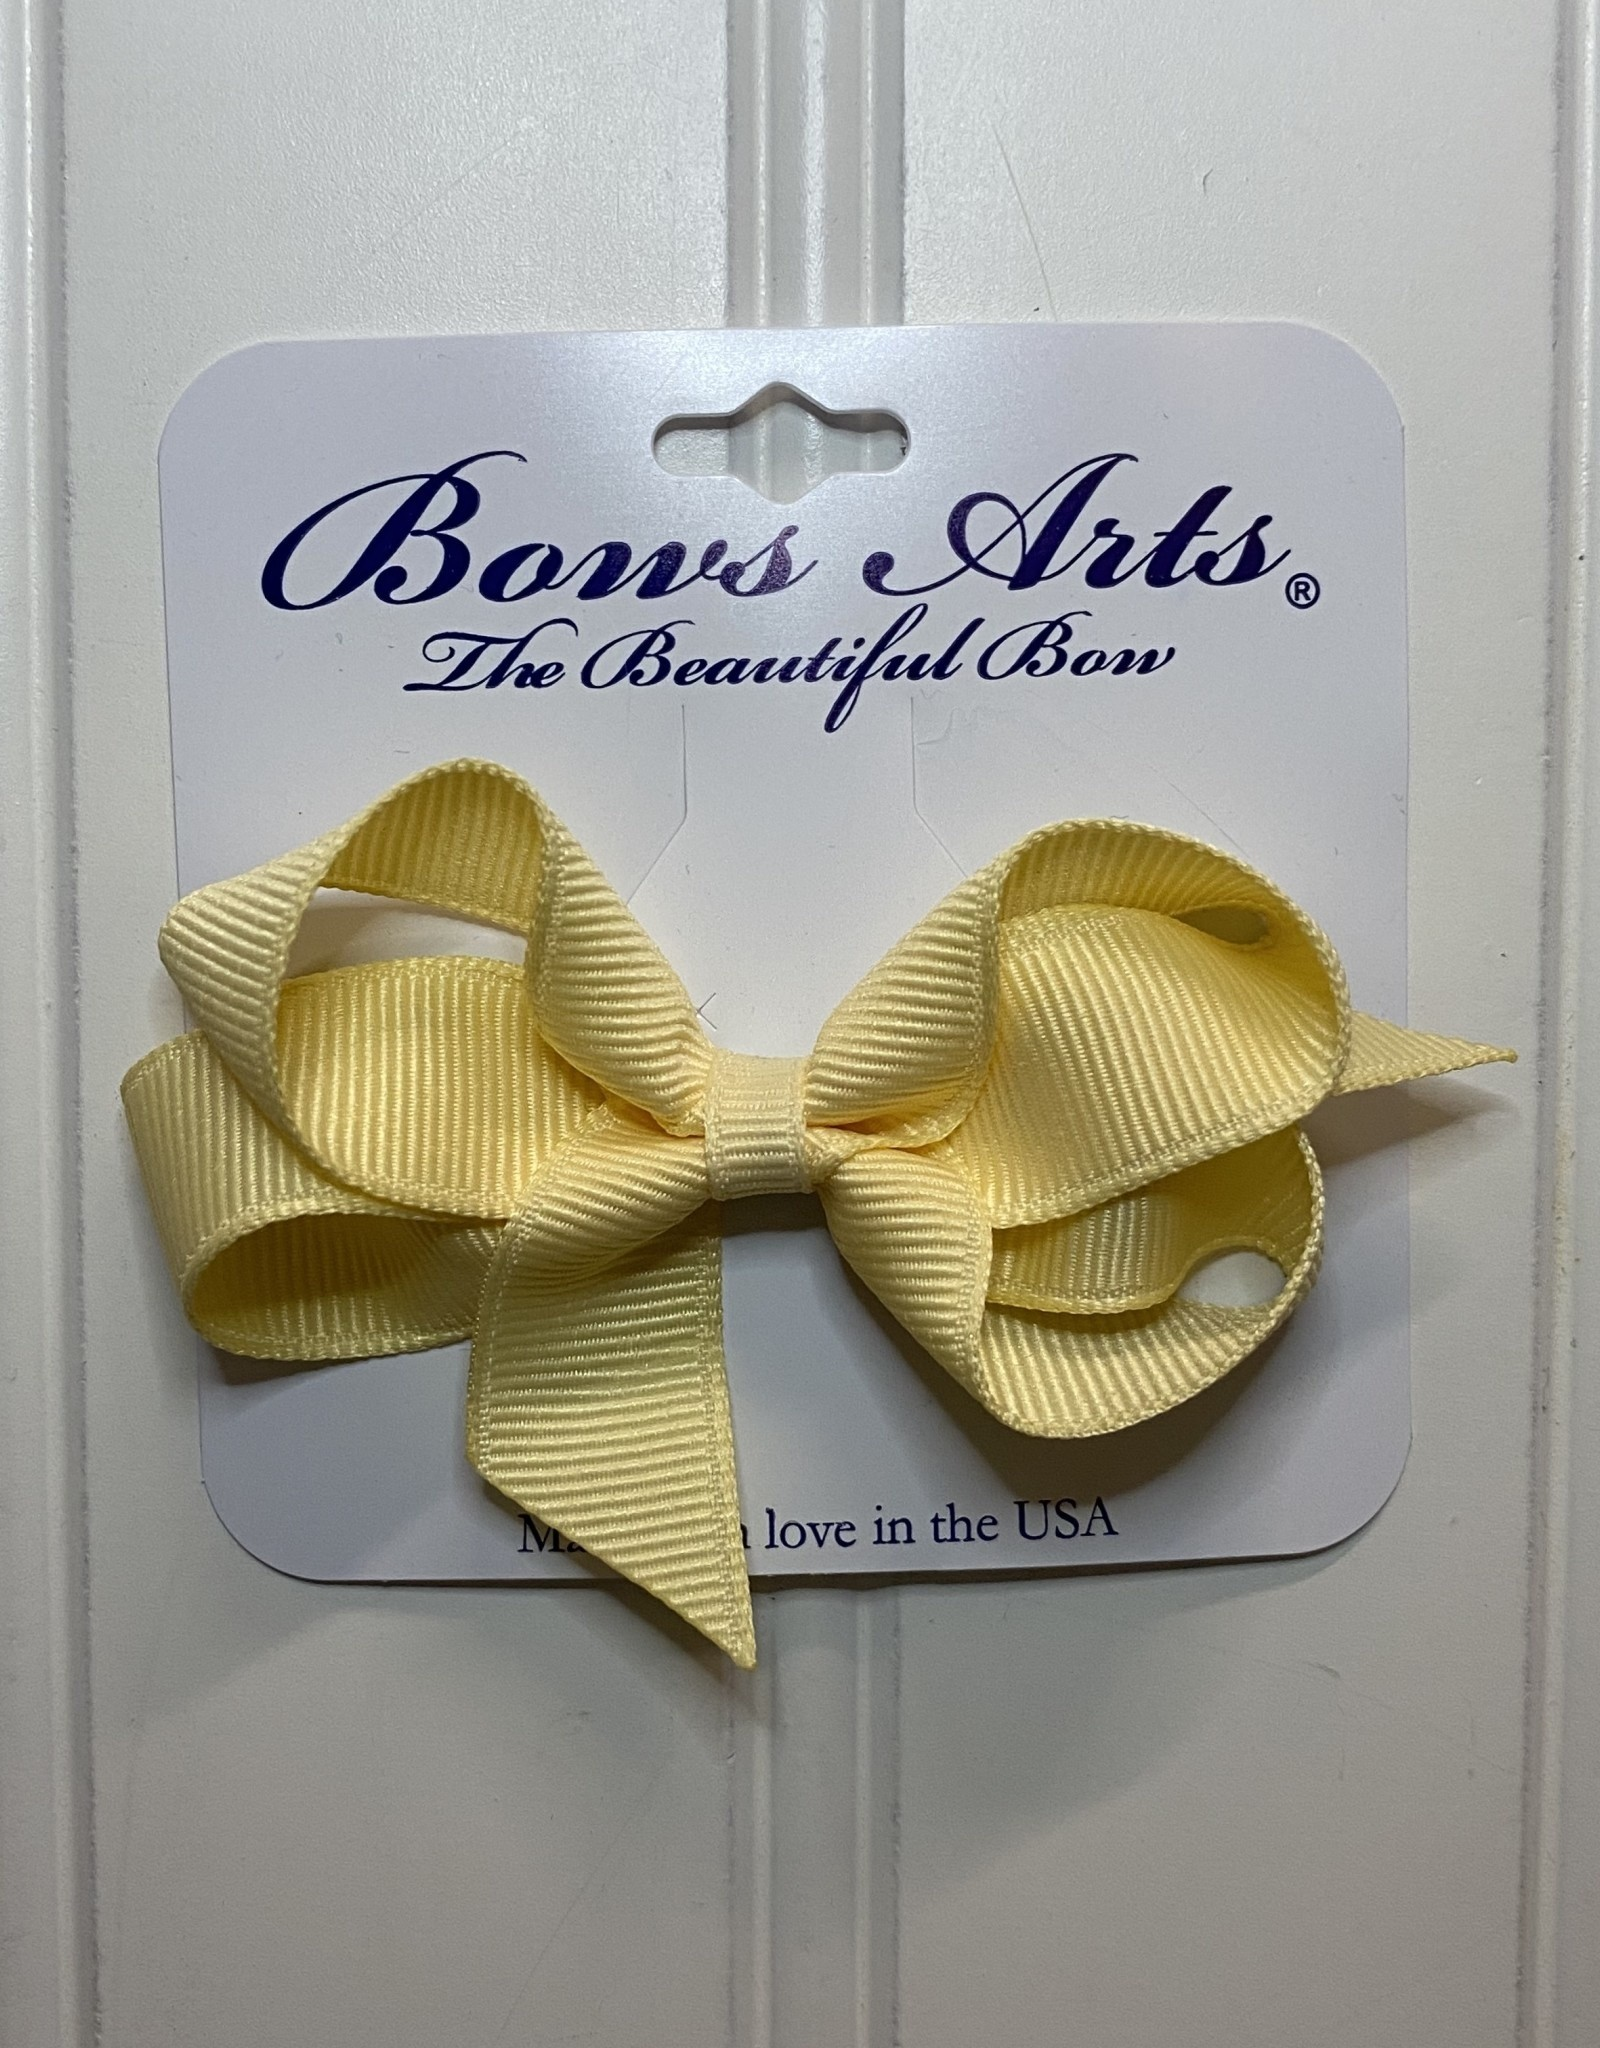 "Bows Arts Toddler Classic Bow 3"" - Wheat"